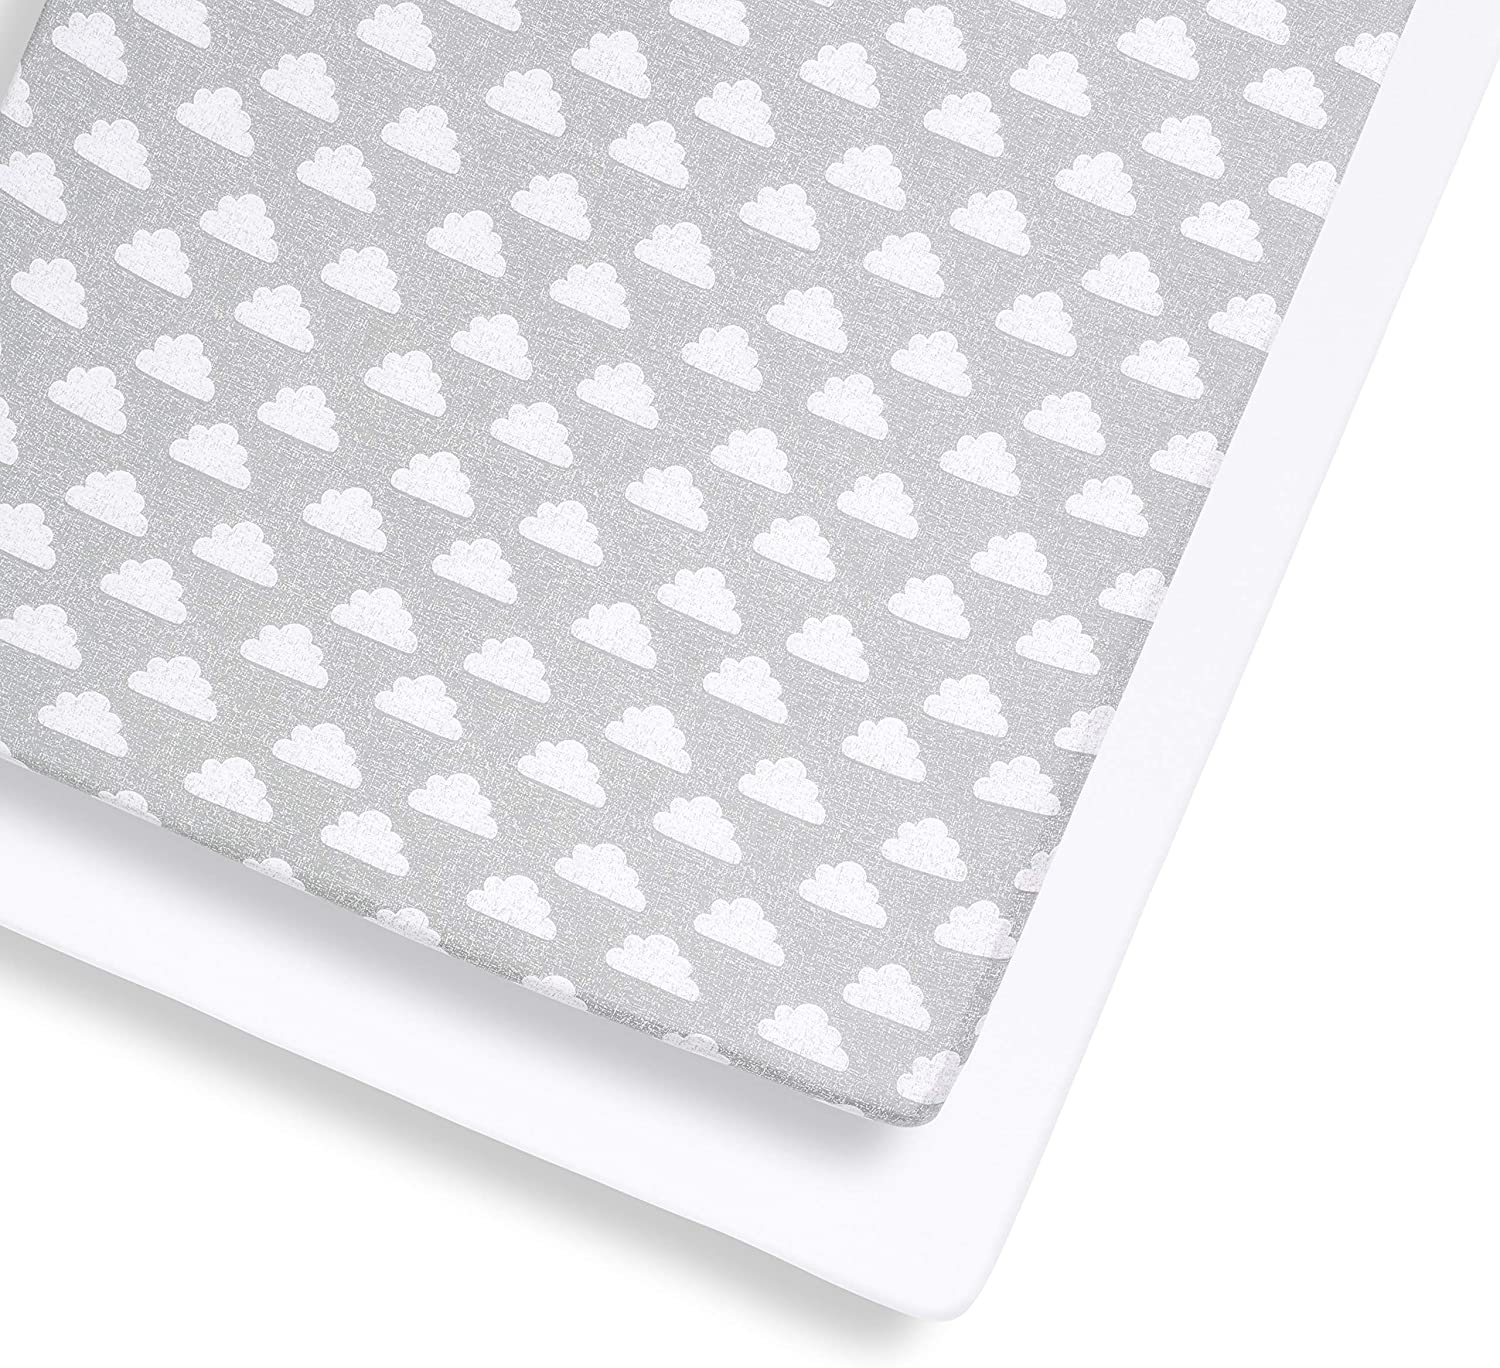 Cloud Snuz Cot and Cot Bed Fitted Sheet BD028CH Grey//White 390 g